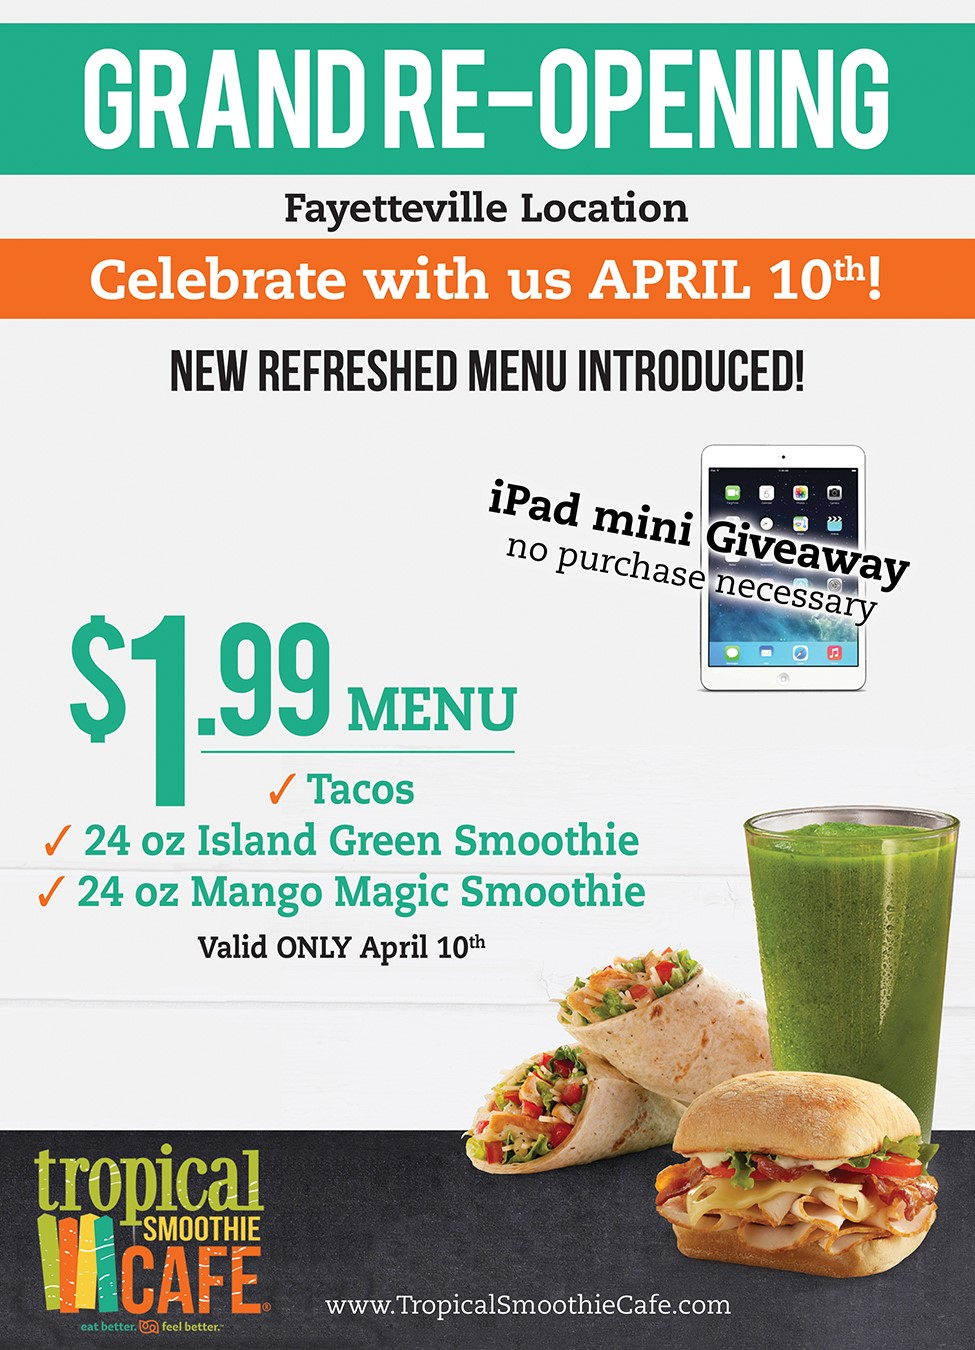 Tropical Smoothie Cafe To Celebrate Grand Re-opening ...